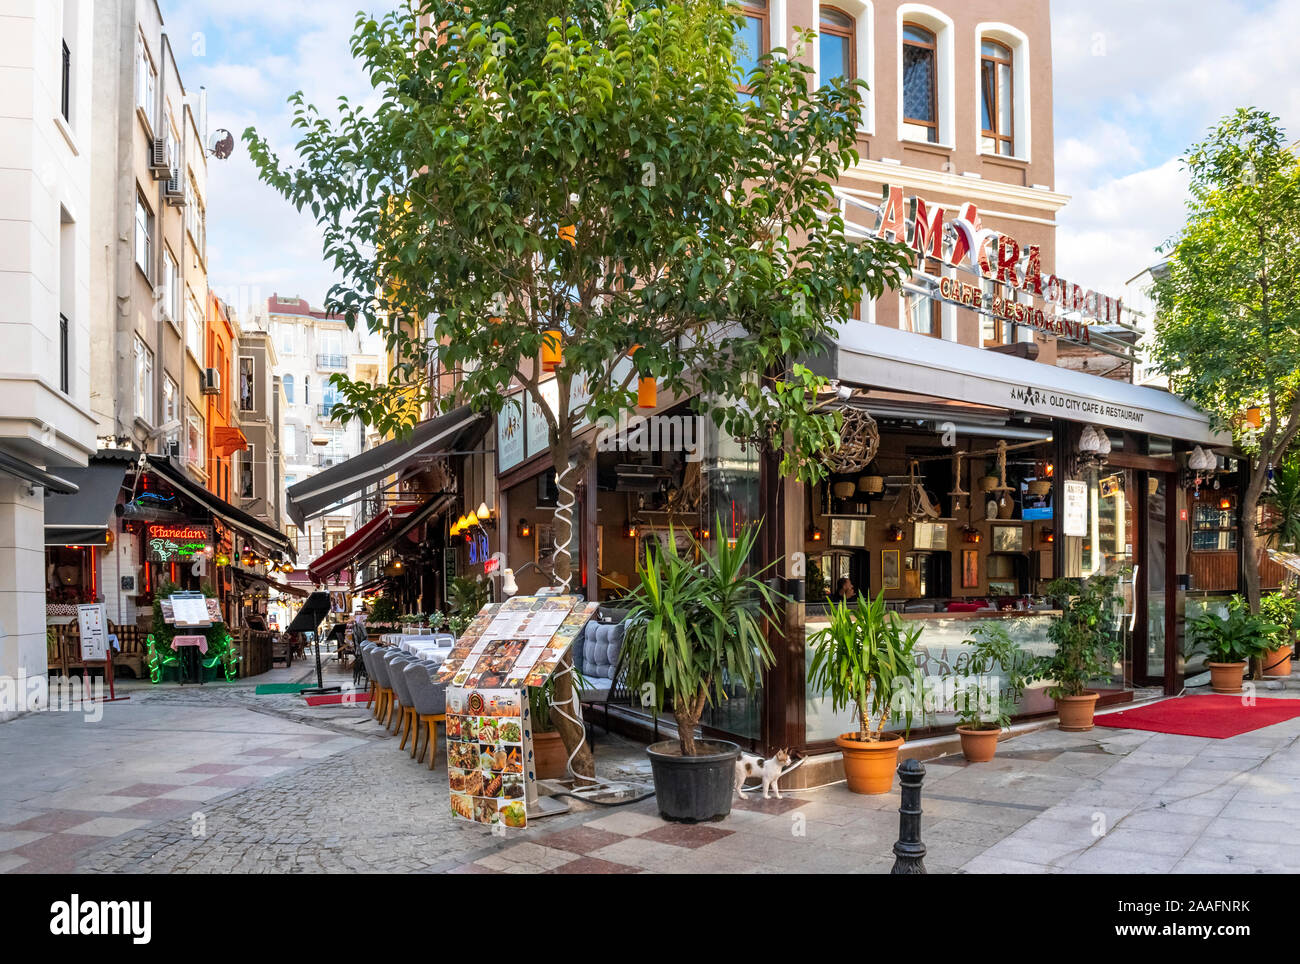 A stray calico tabby cat stands near a cafe in the Sultanahmet district of Istanbul, Turkey. Stock Photo